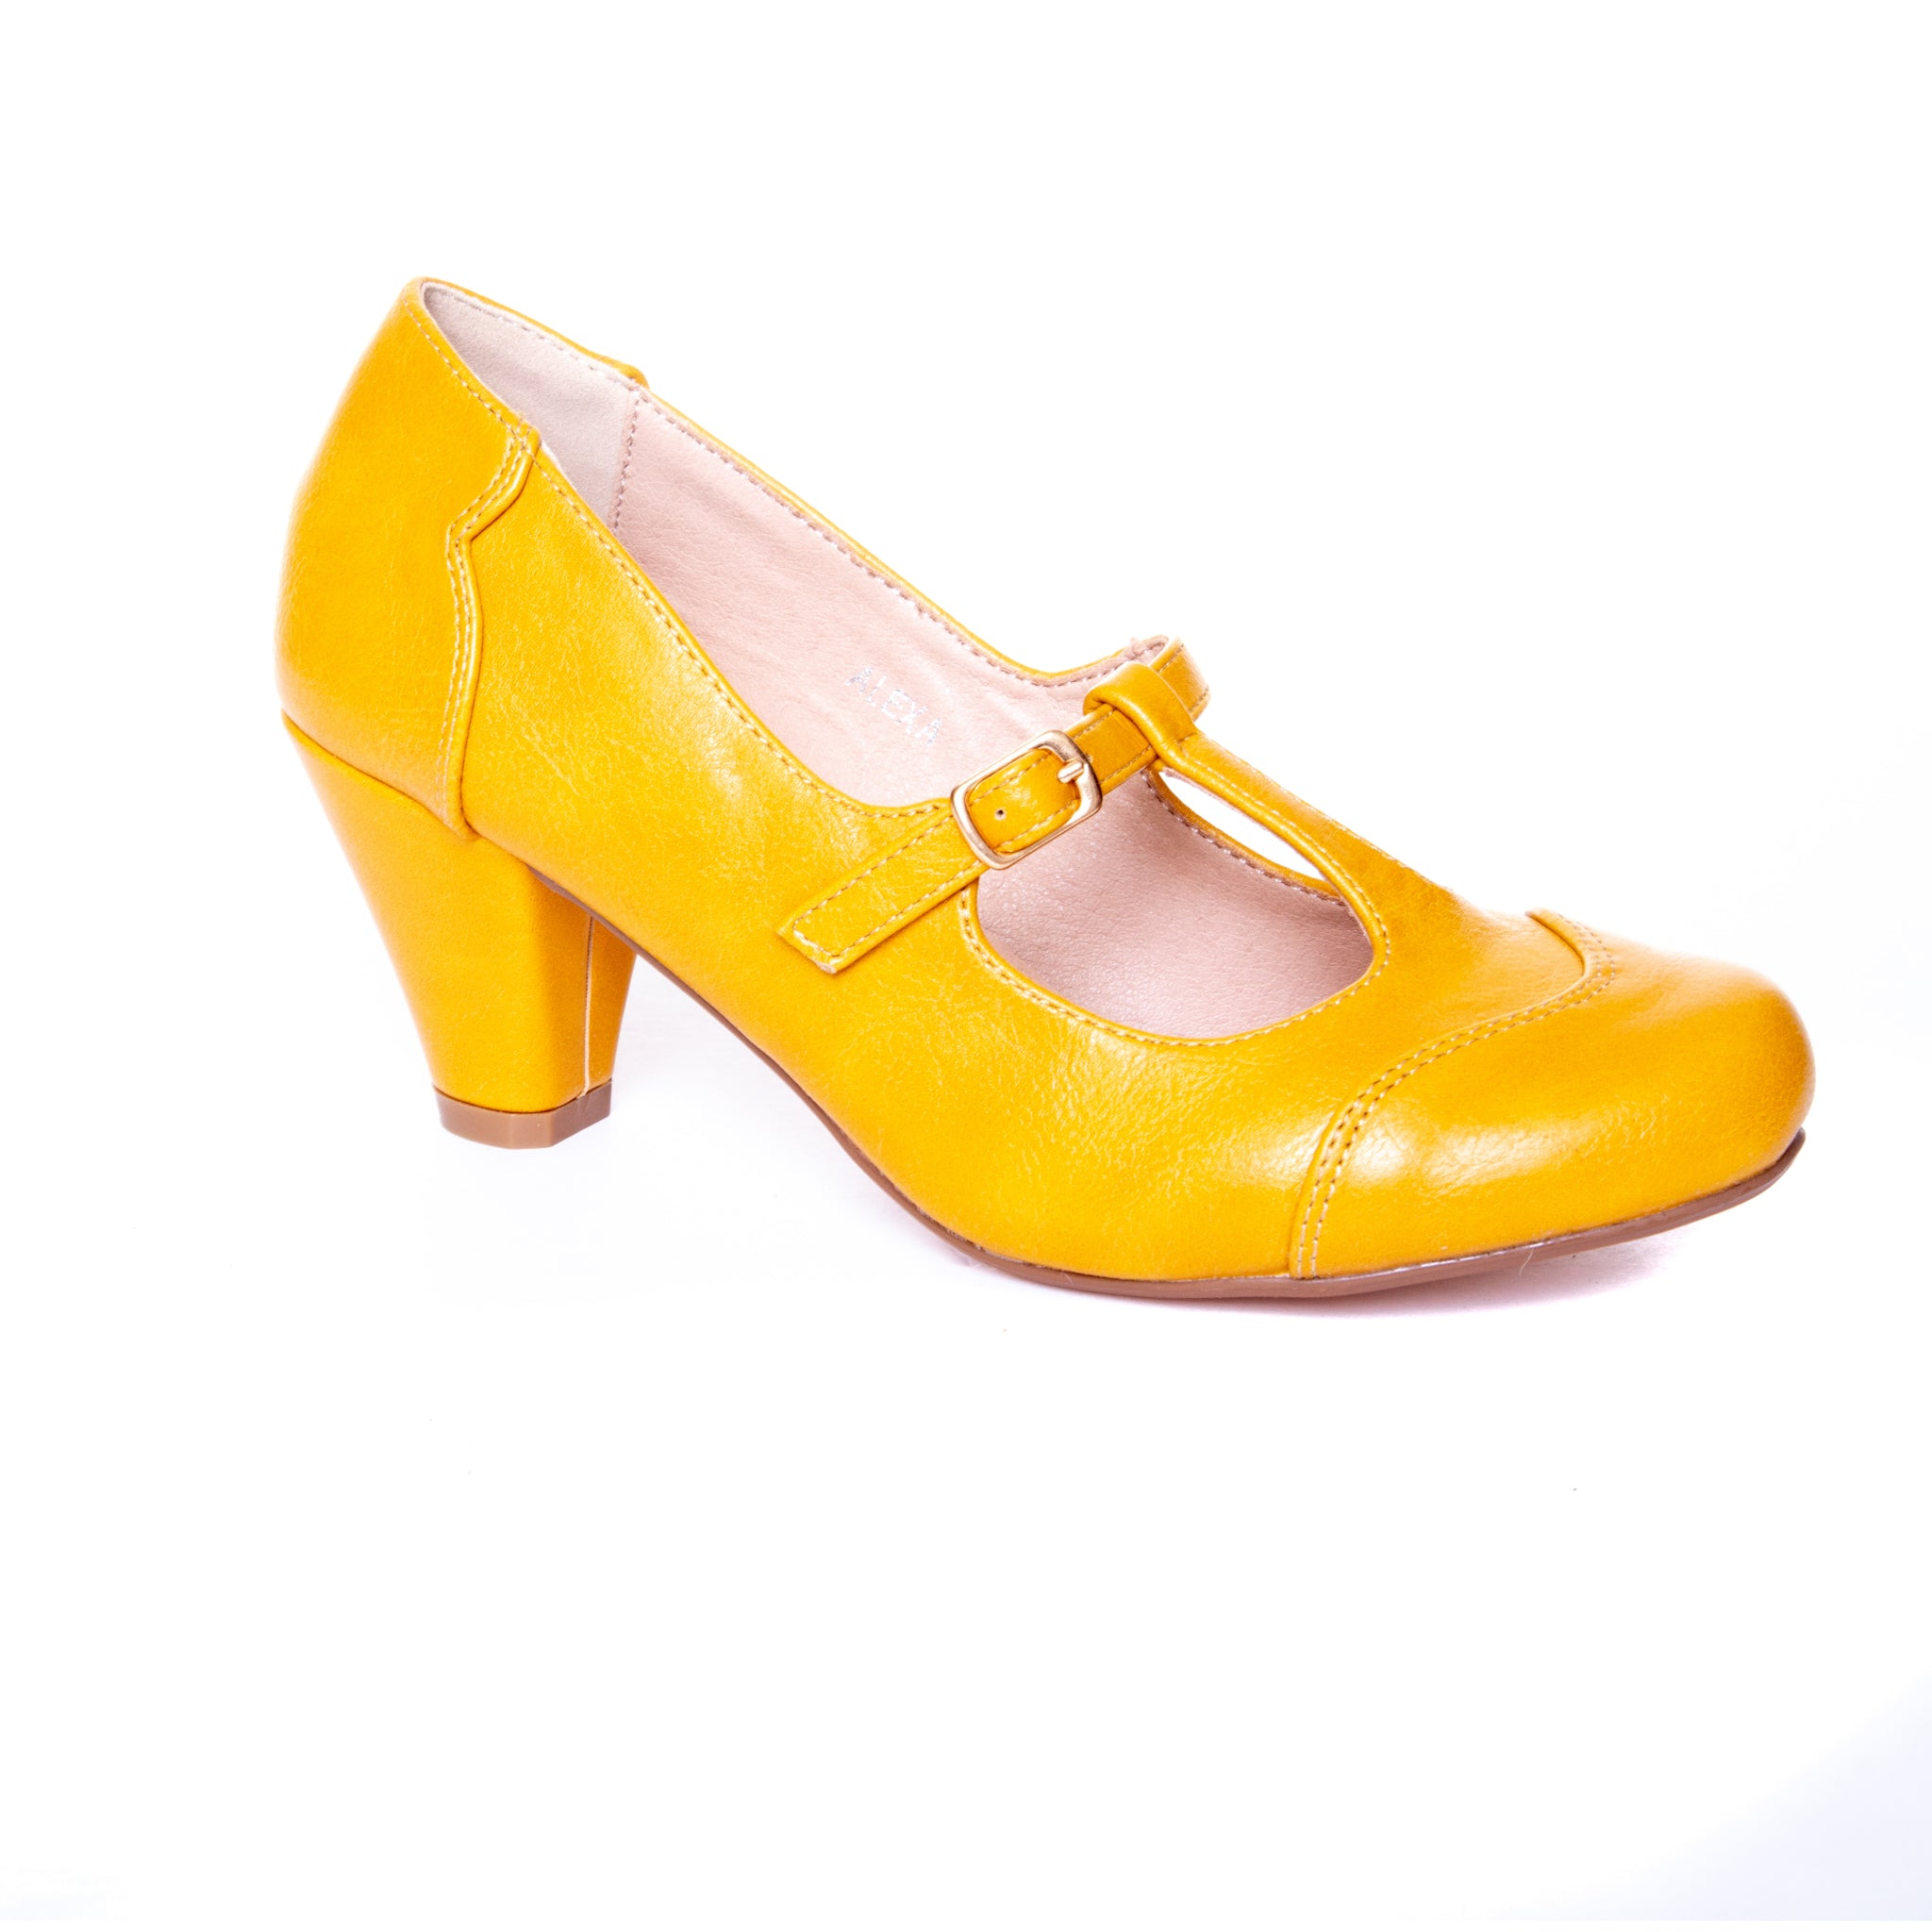 Alexa by Dolce Nome | Mary Jane T-Strap Pumps in Mustard (main view)